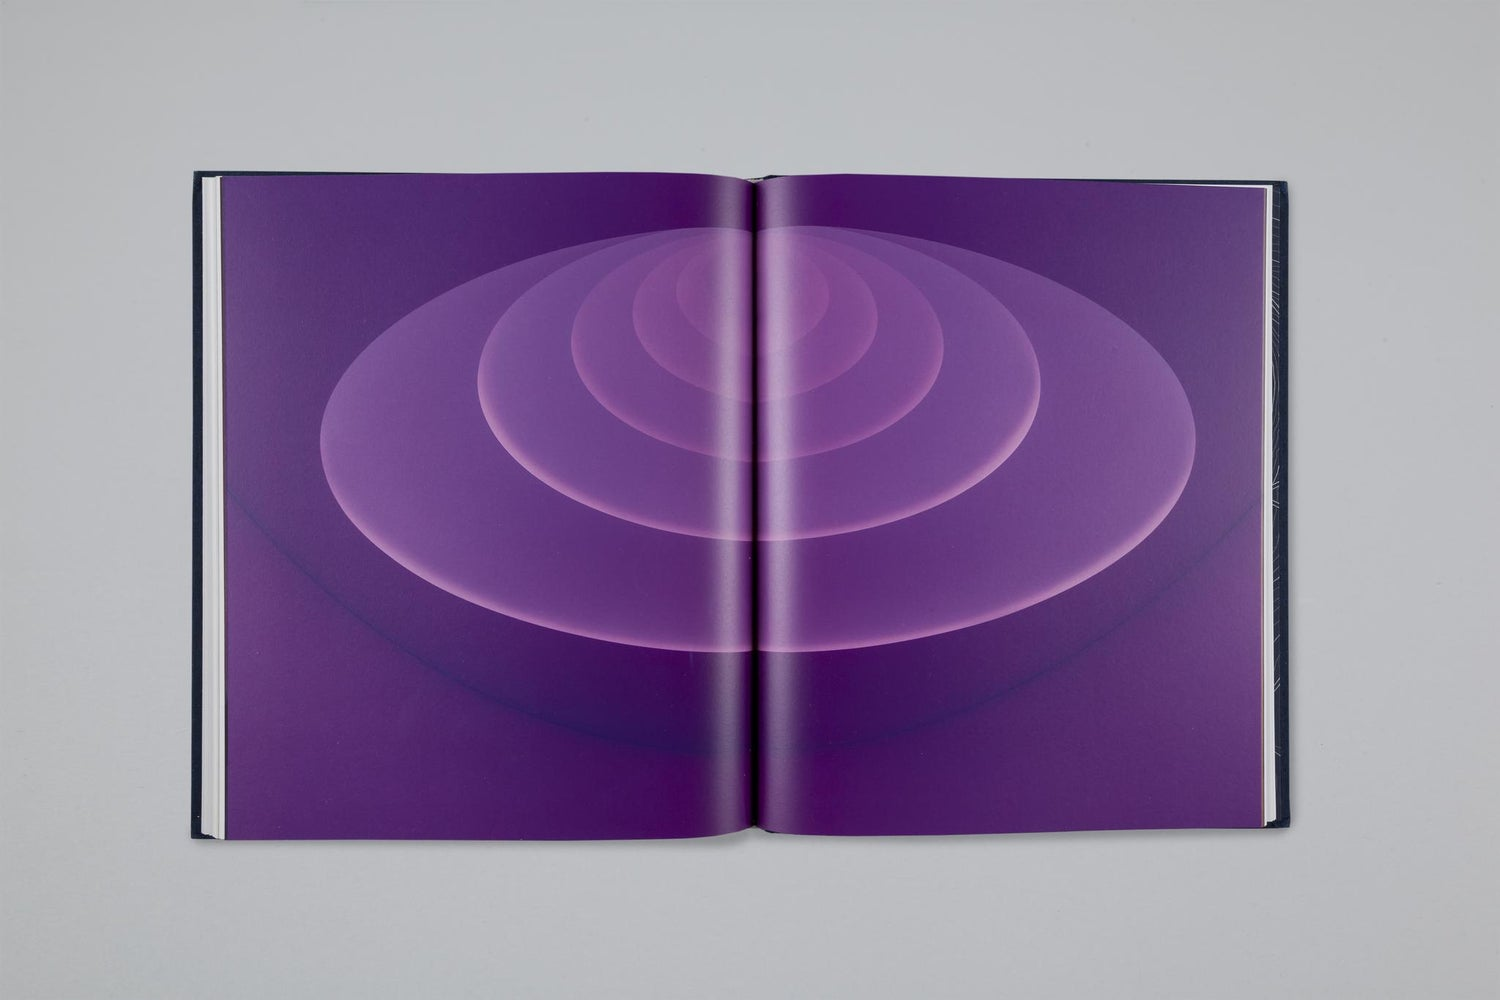 Image of James Turrell